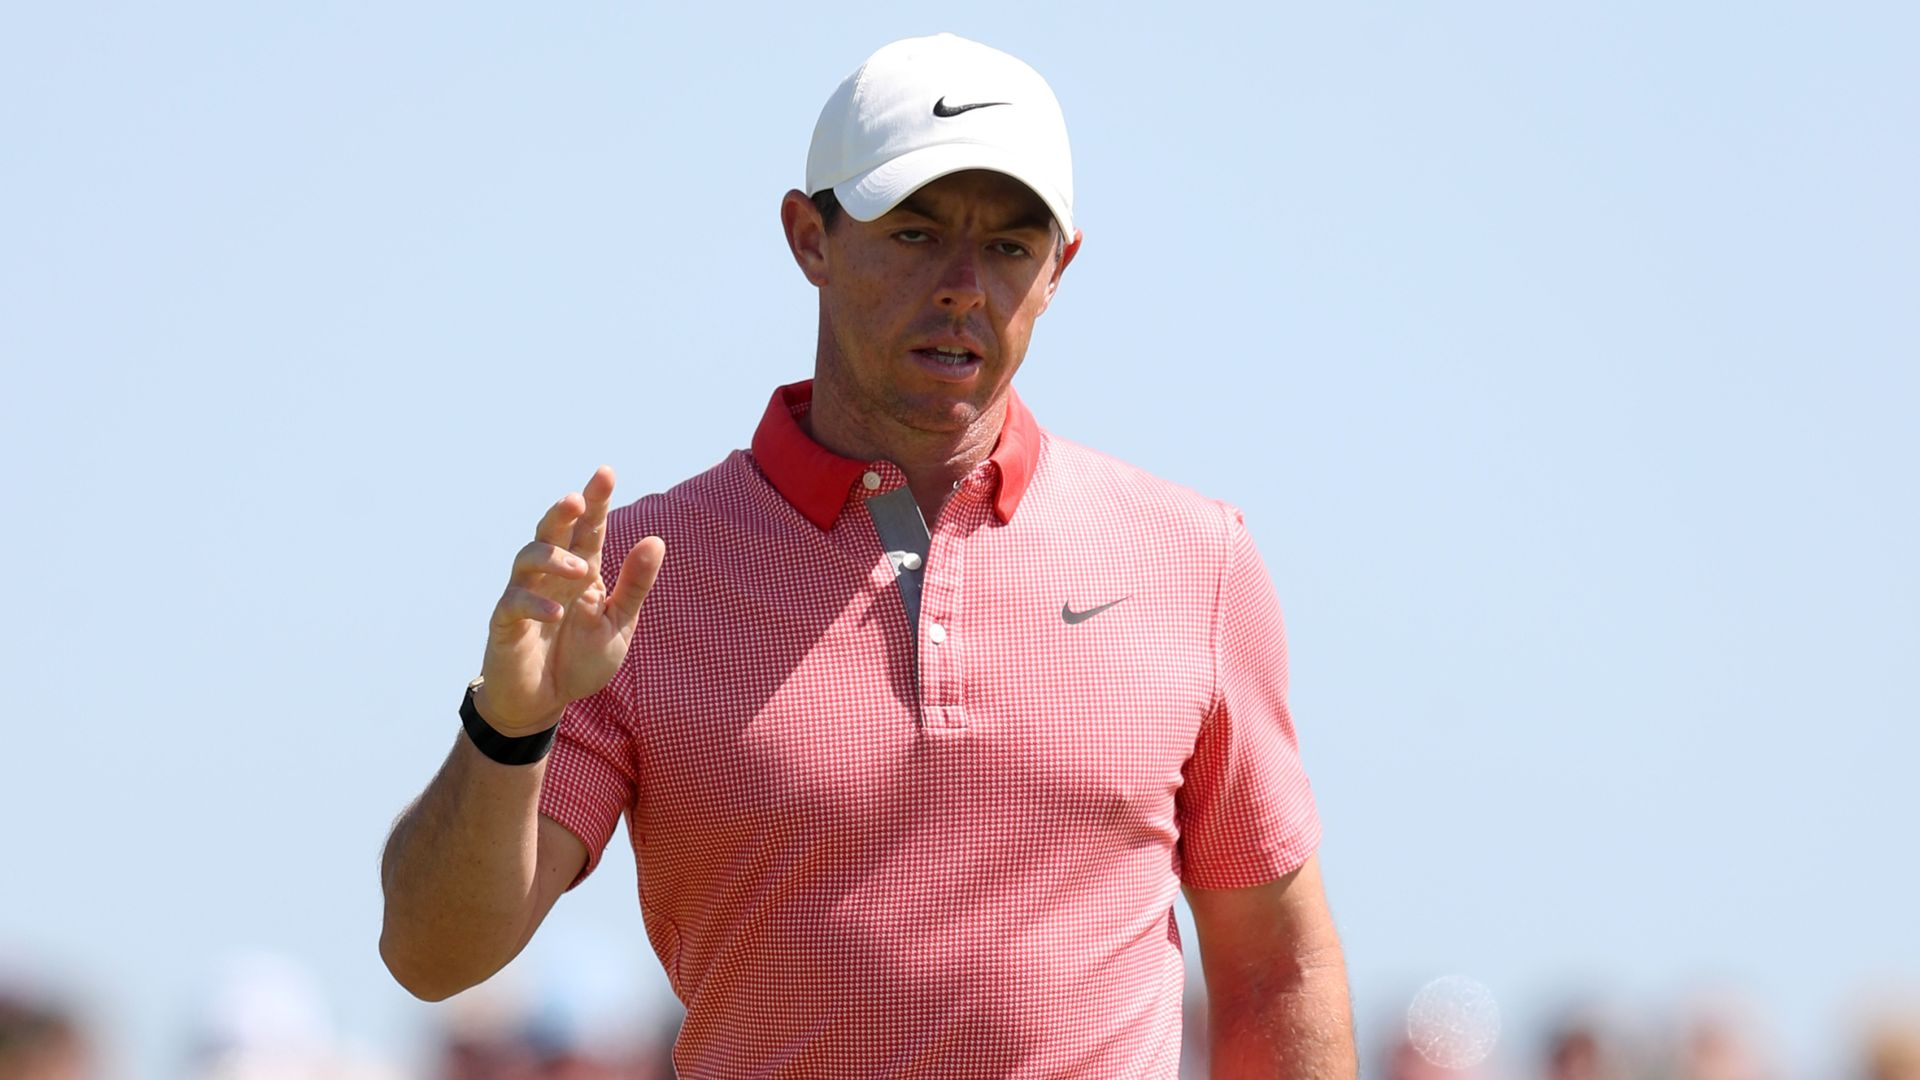 McIlroy: I'm the best player in the world